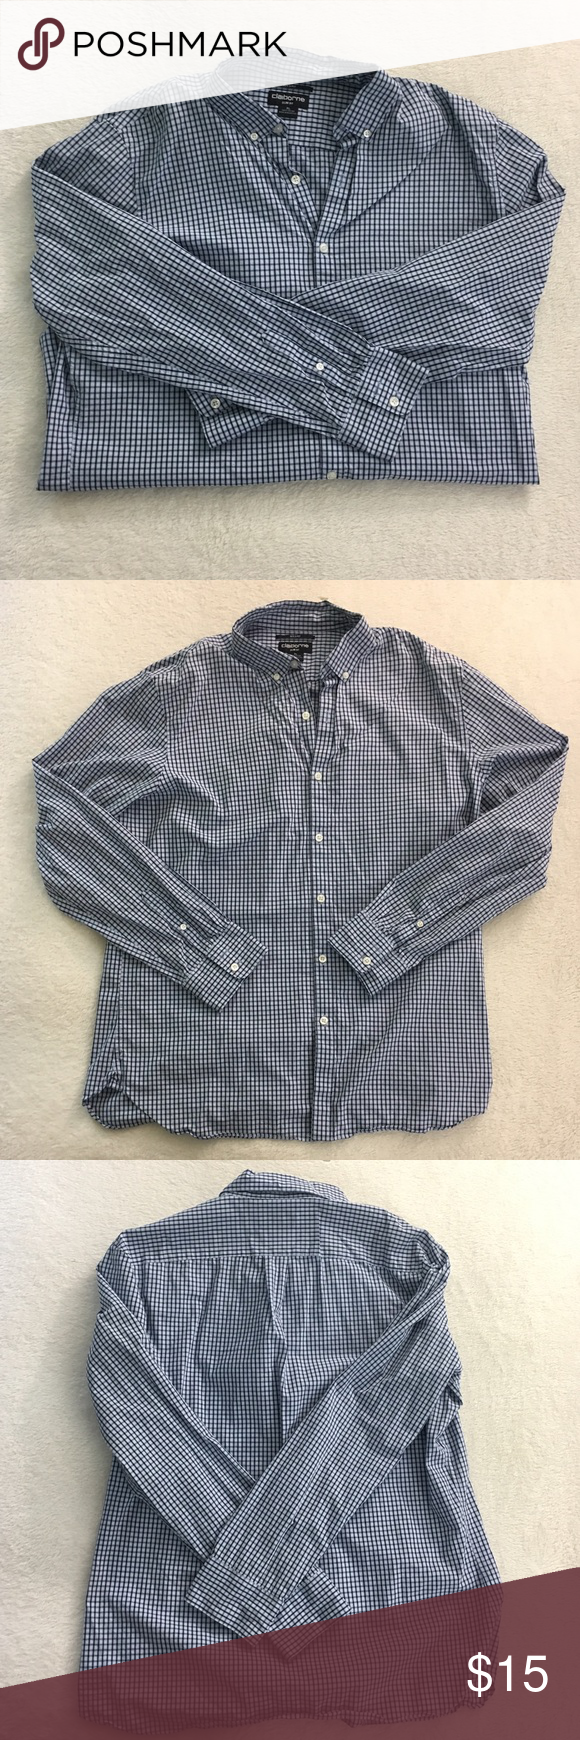 Express extra slim fit button down   Clothes design, Slim